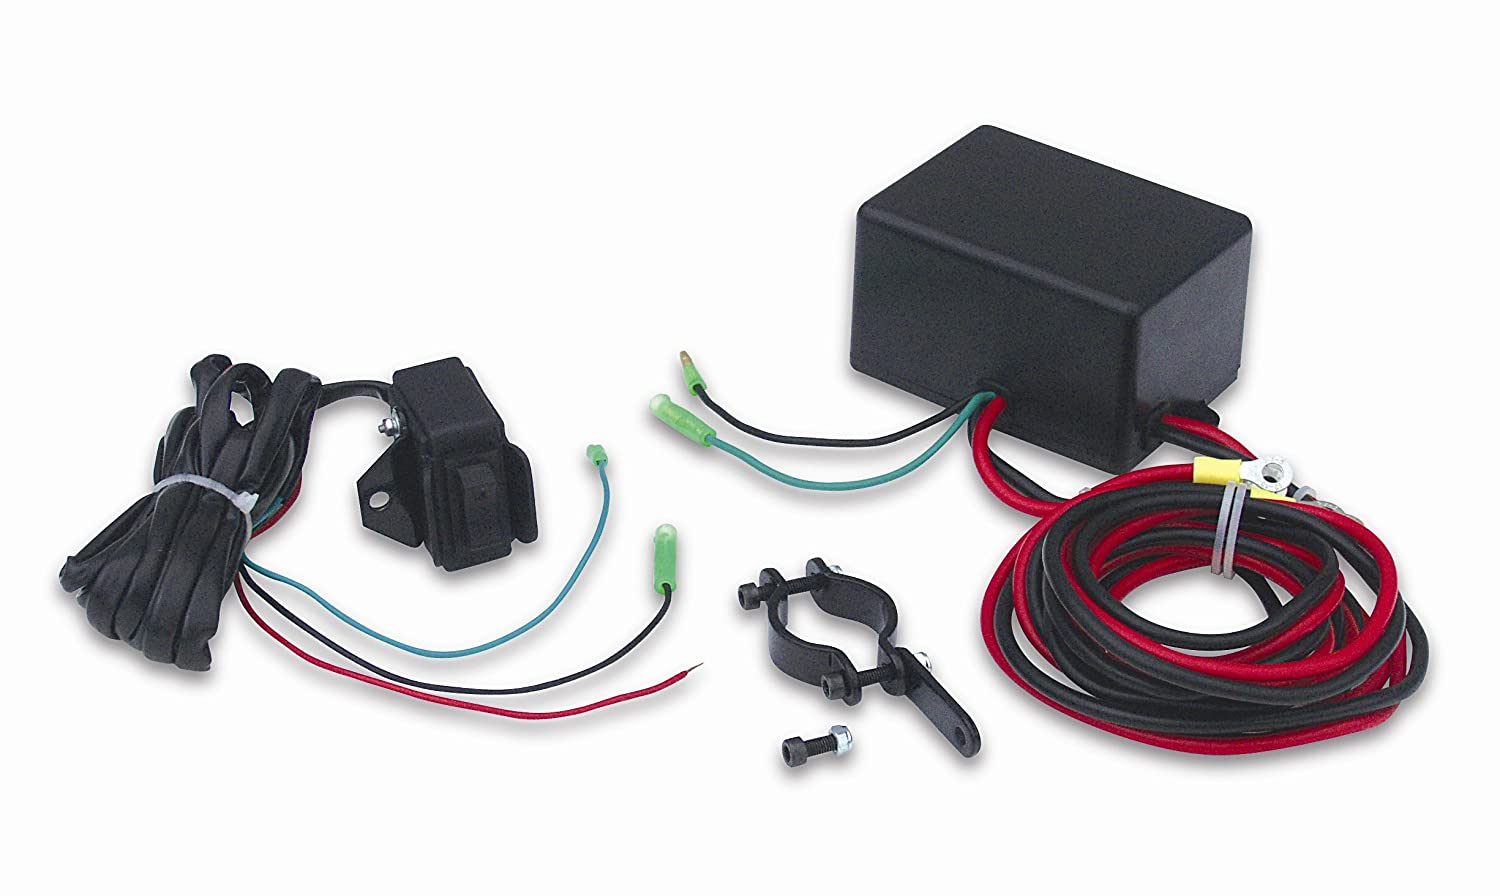 Amazon.com: Superwinch 2320200 Kit - ATV Switch Upgrade Kit for LT2000 -  Includes handlebar mountable switch, wiring & hardware: Automotive